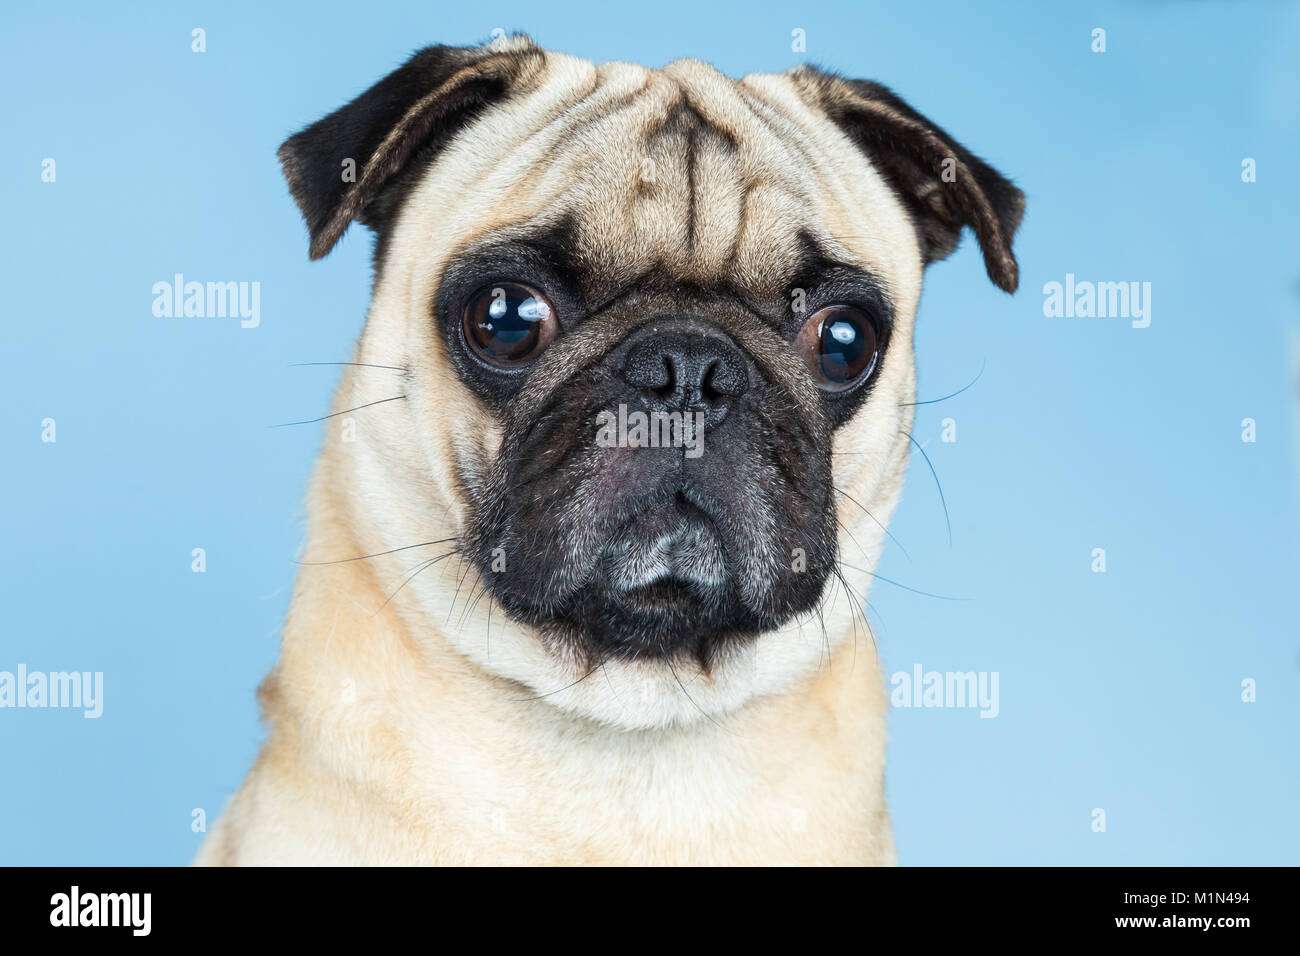 A cute fawn pug looking to the camera, placed in a blue background. - Stock Image